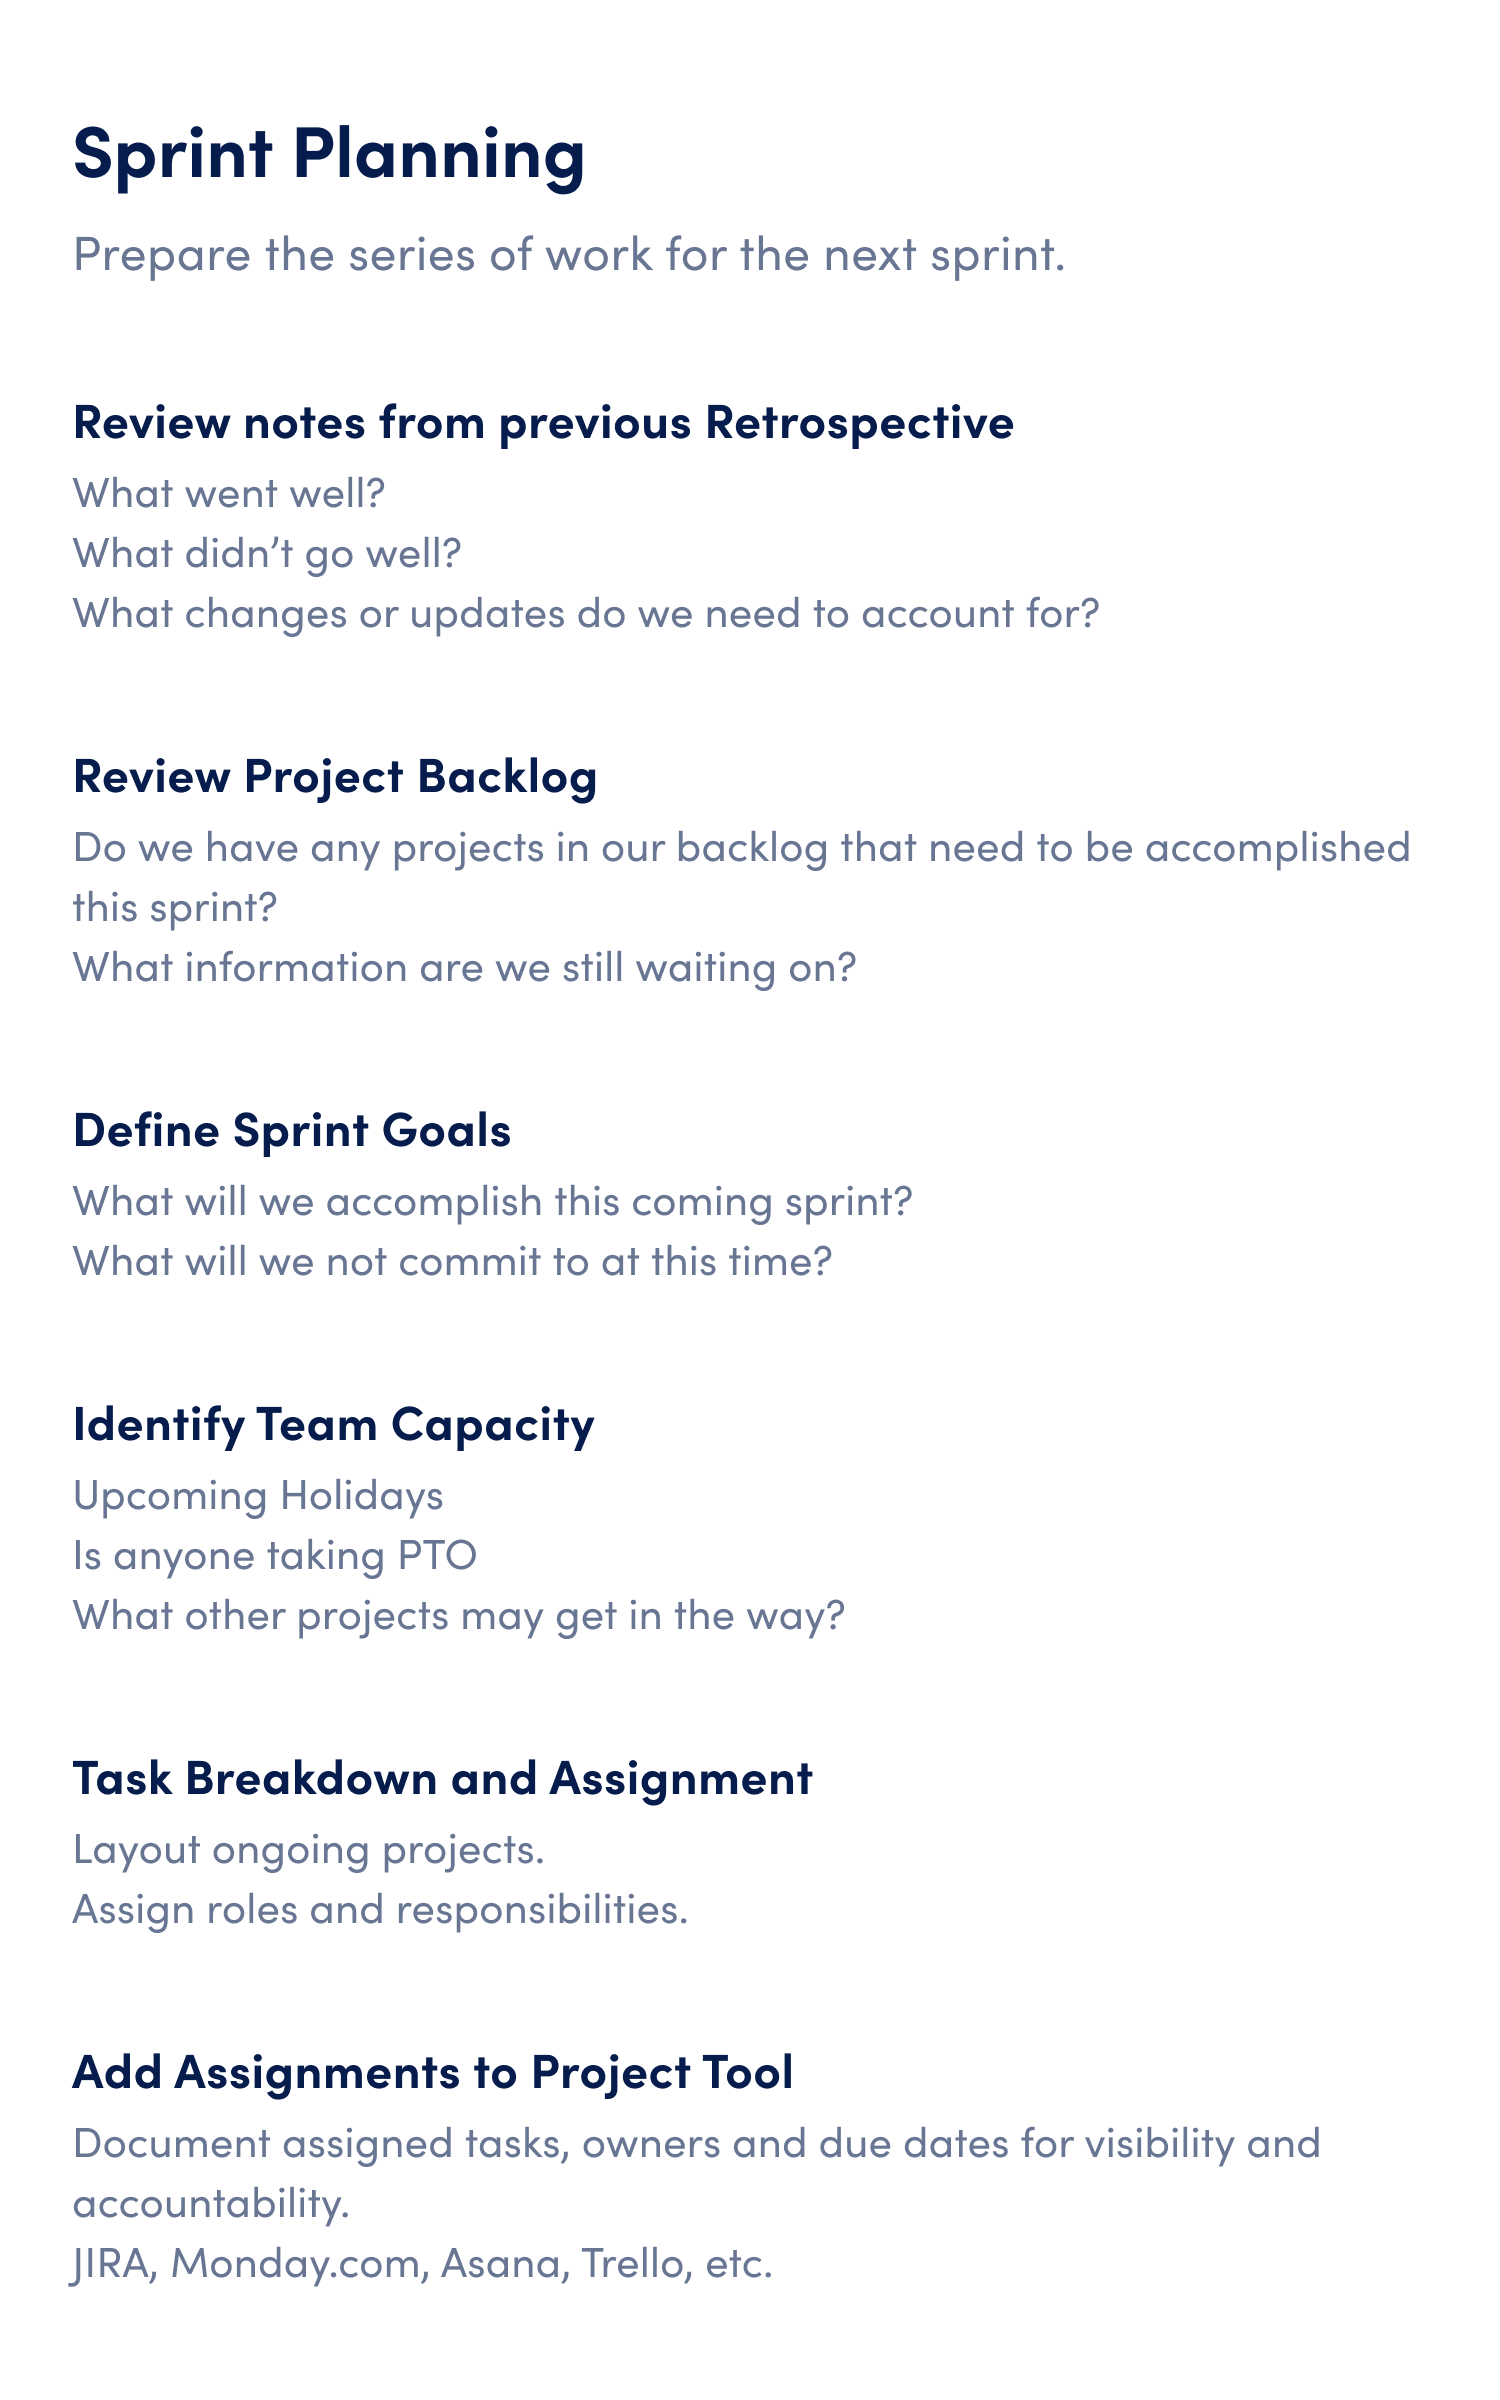 agile sprint planning meeting agenda template